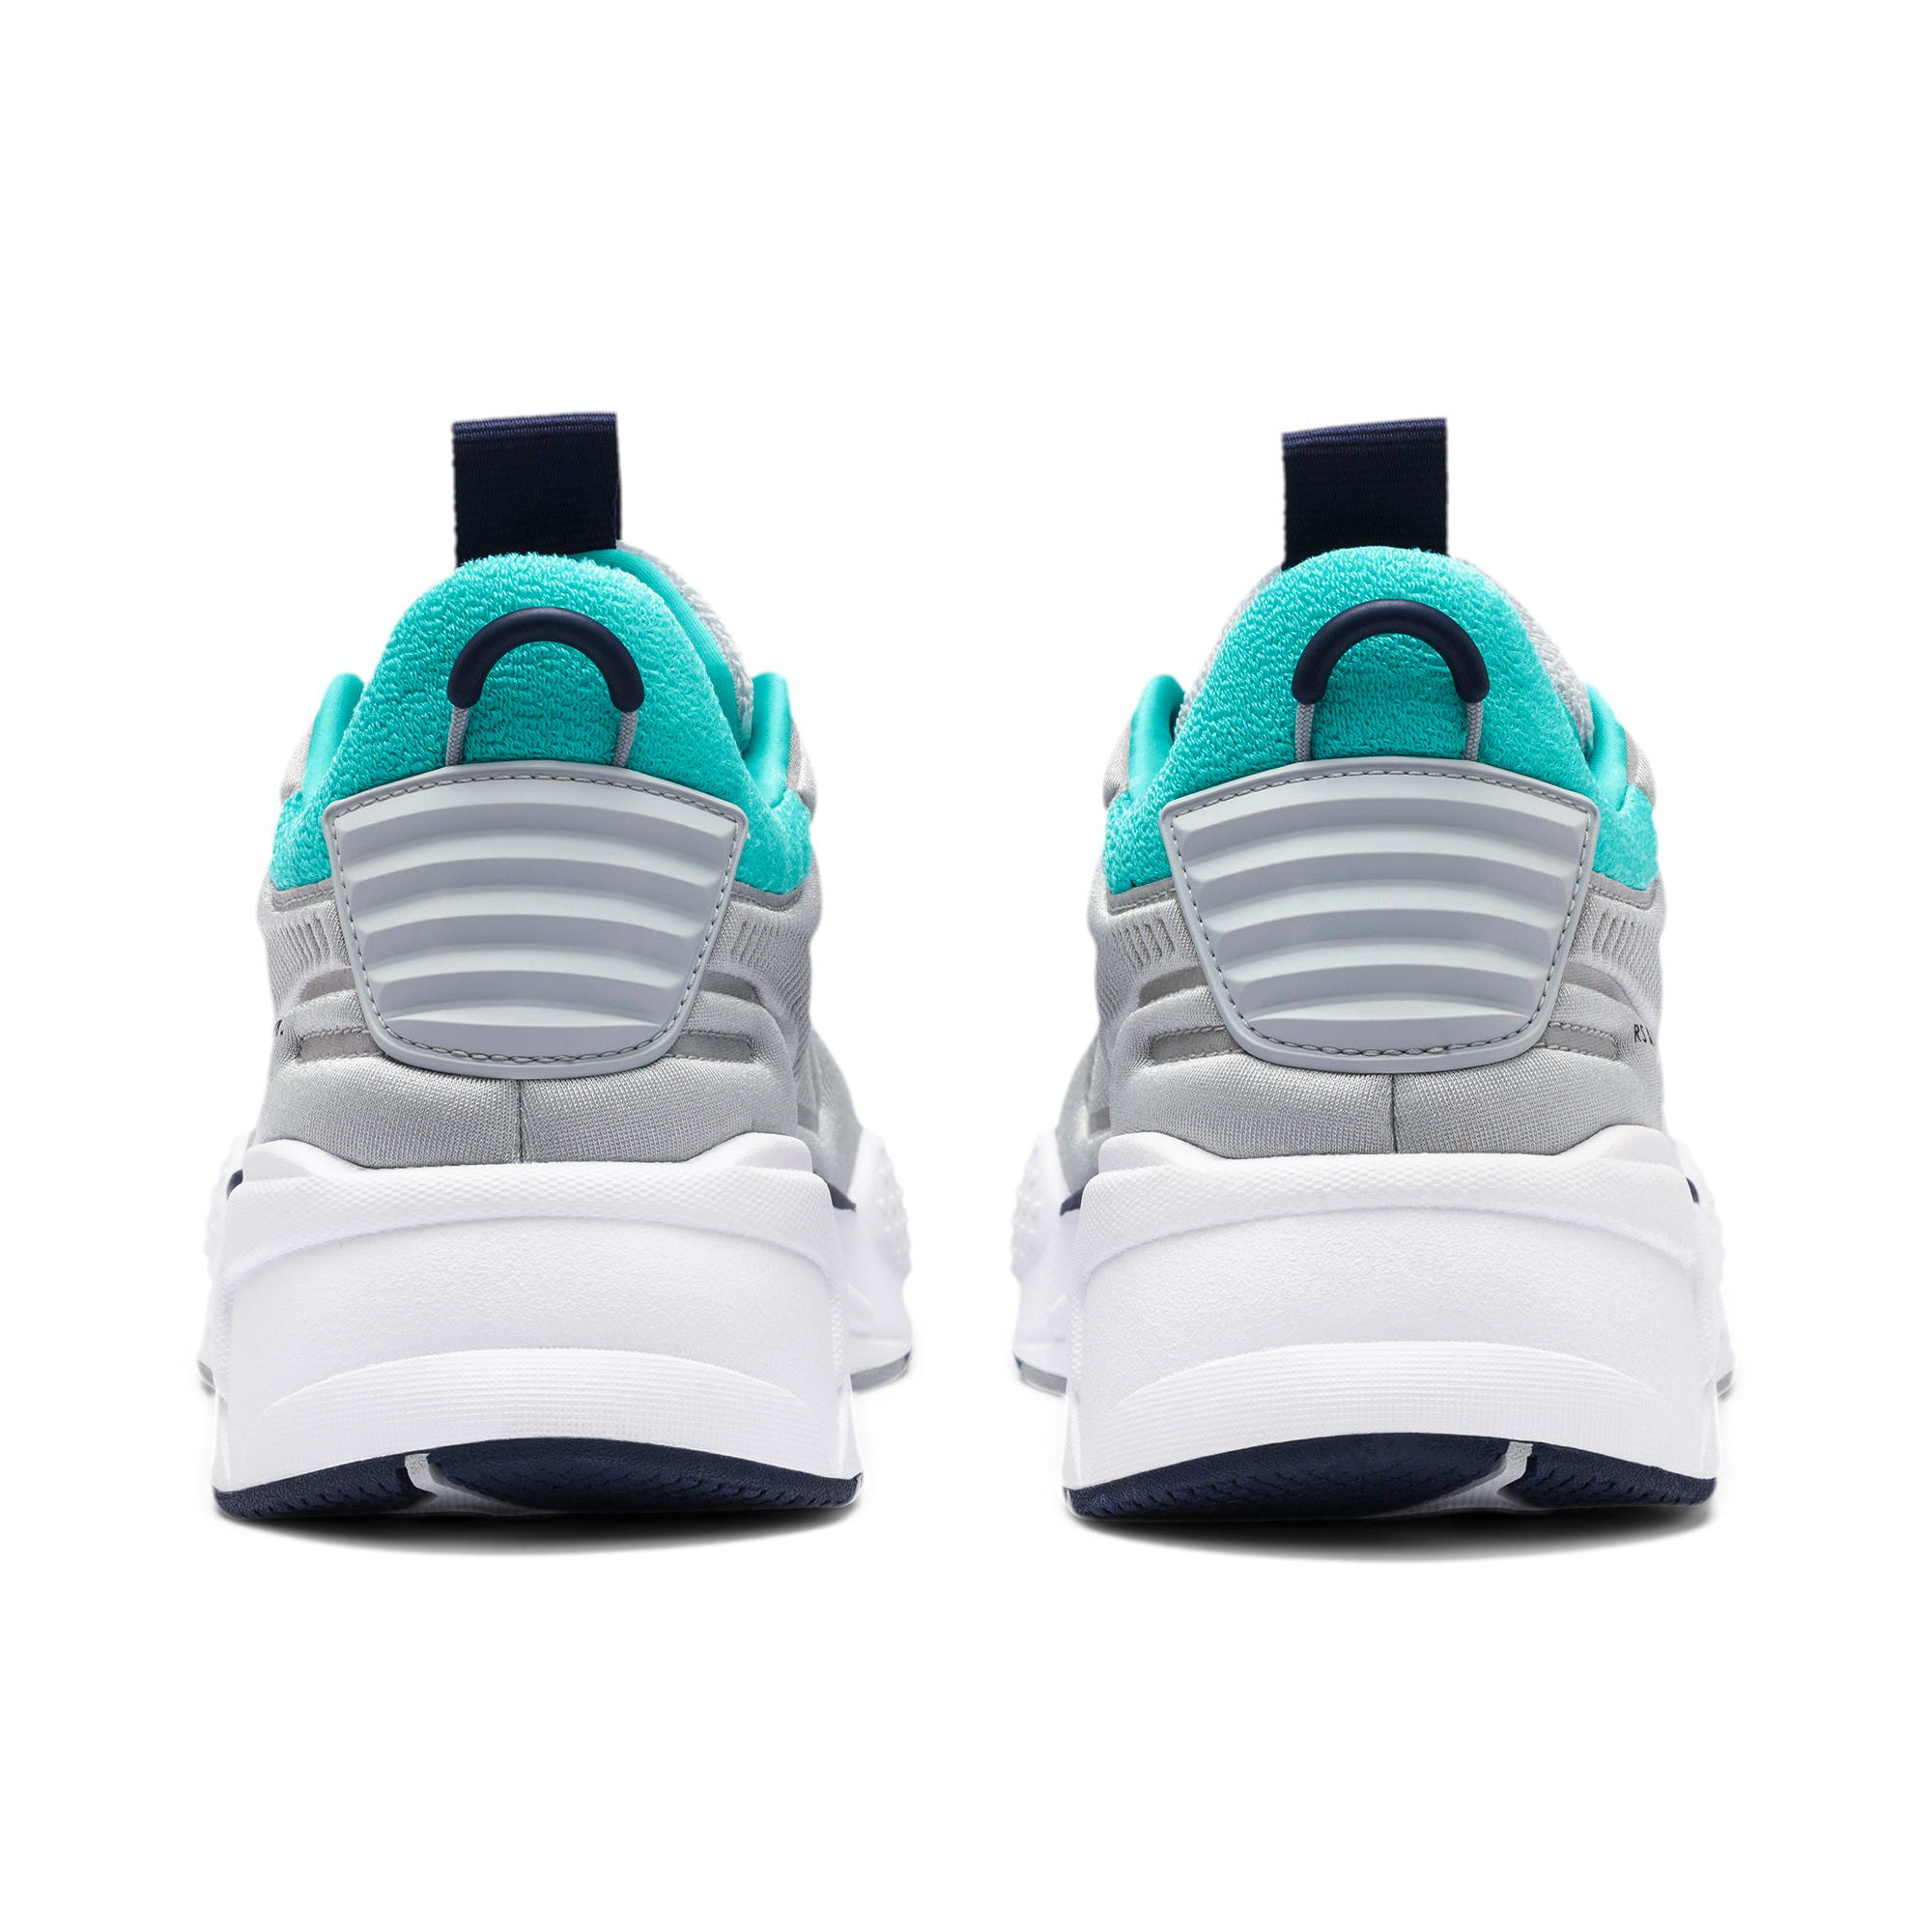 Thumbnail 4 of RS-X Softcase Sneakers, High Rise-Blue Turquoise, medium